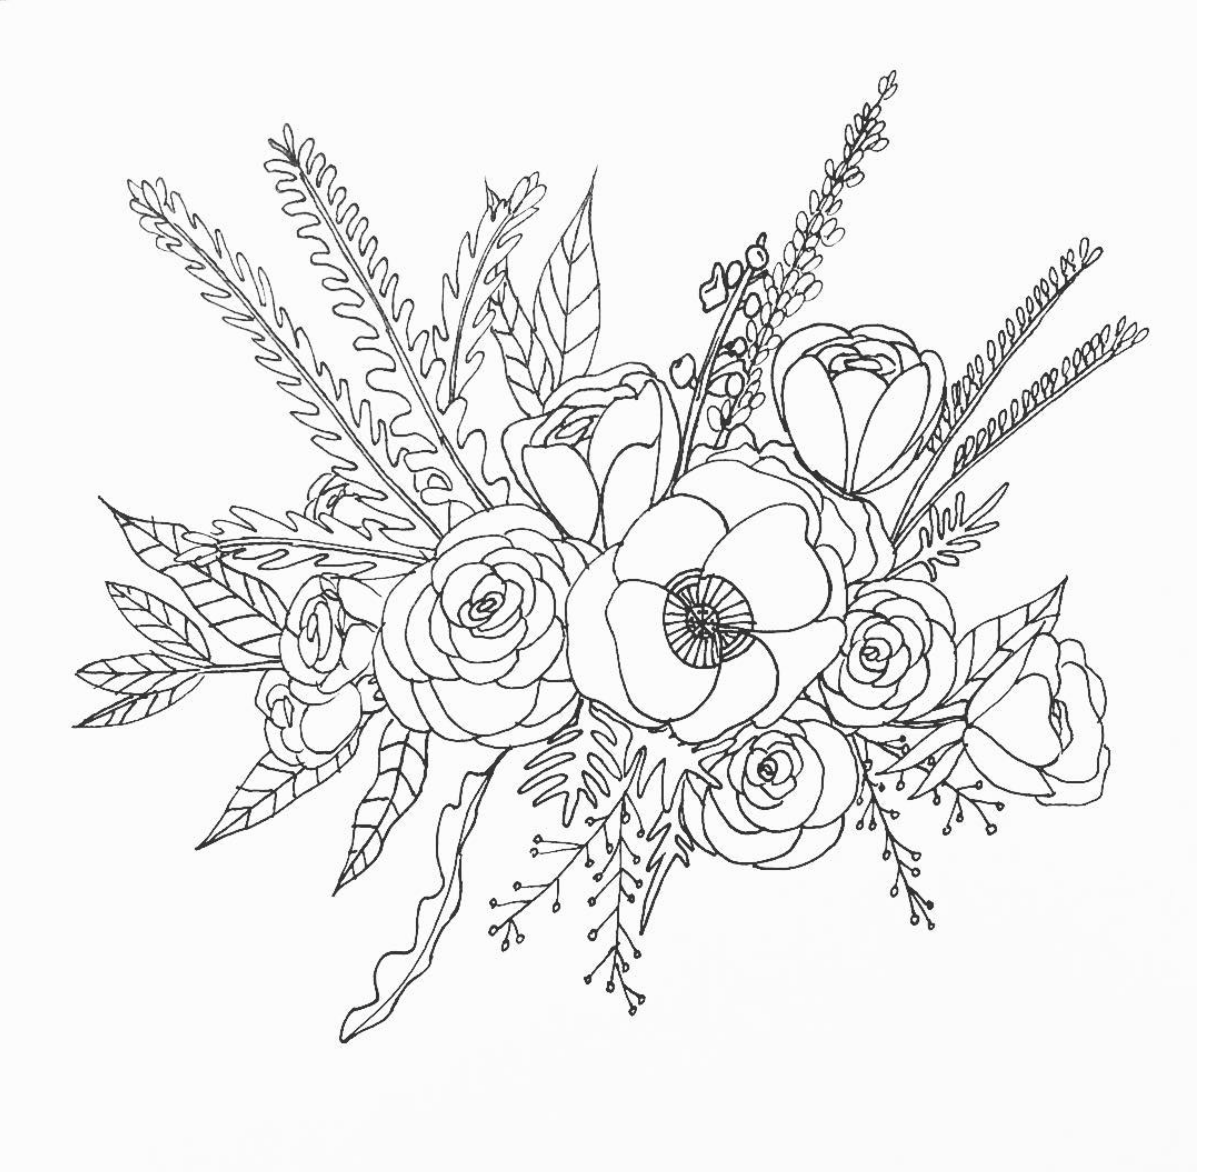 Line Drawing Designs : Line drawing flower illustration floral bouquet art